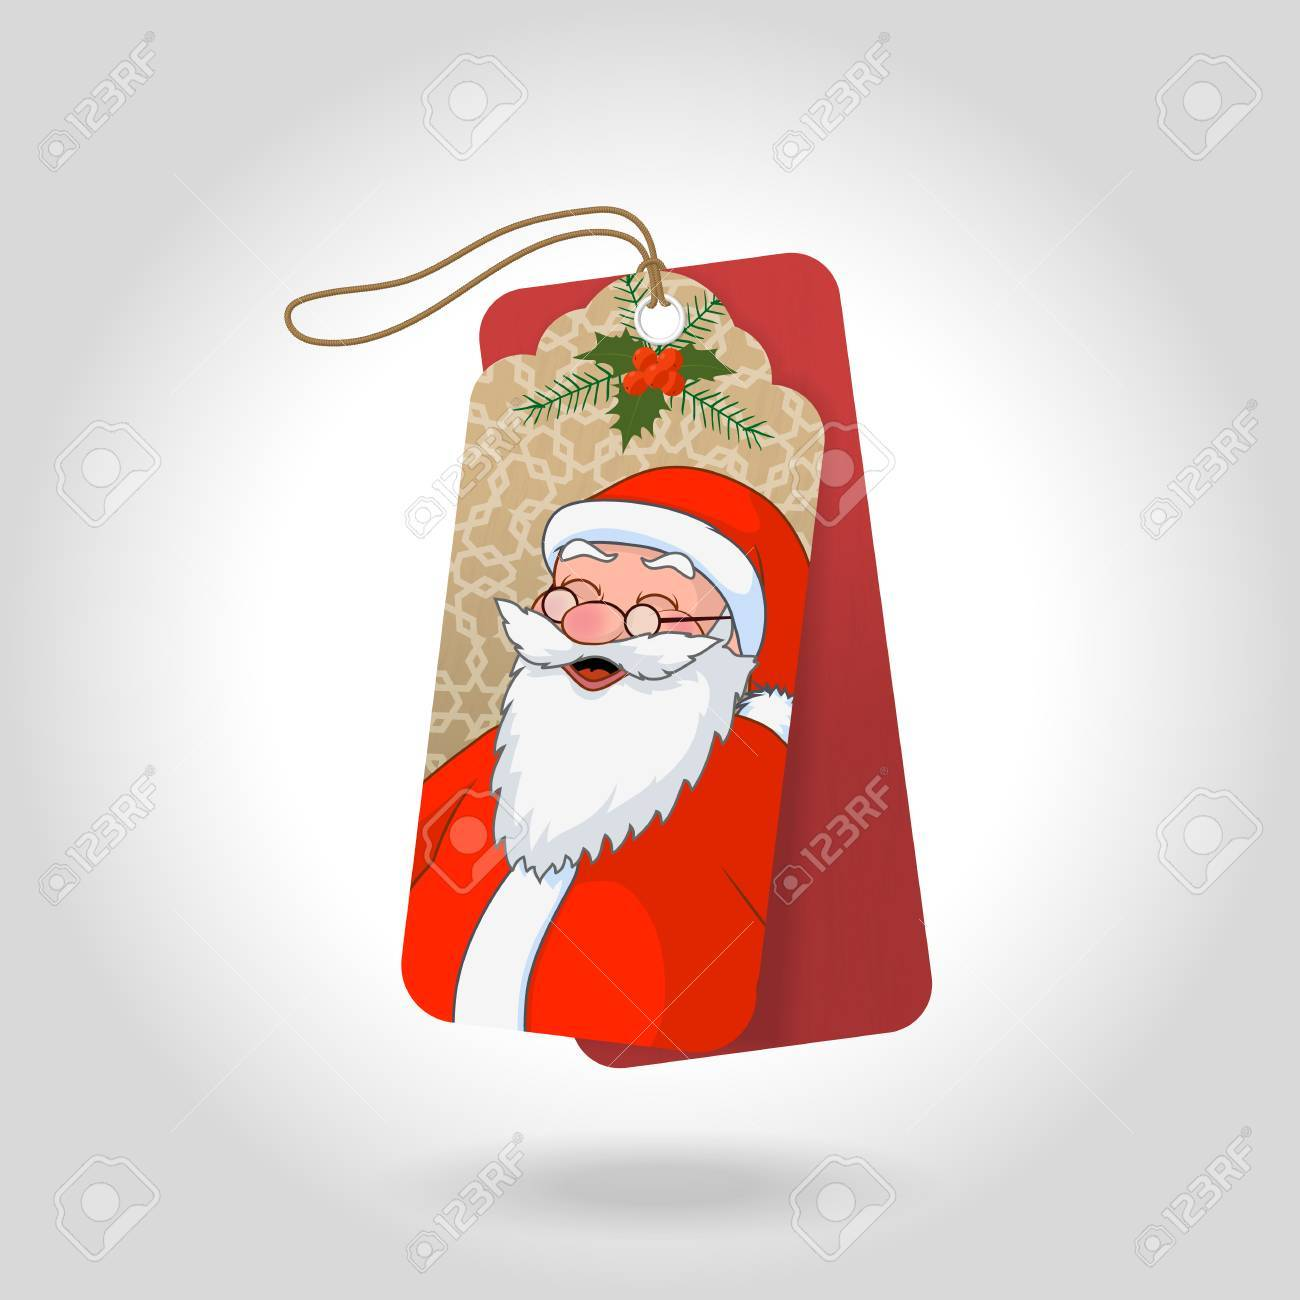 cute christmas gift tags with funny squinted santa claus and